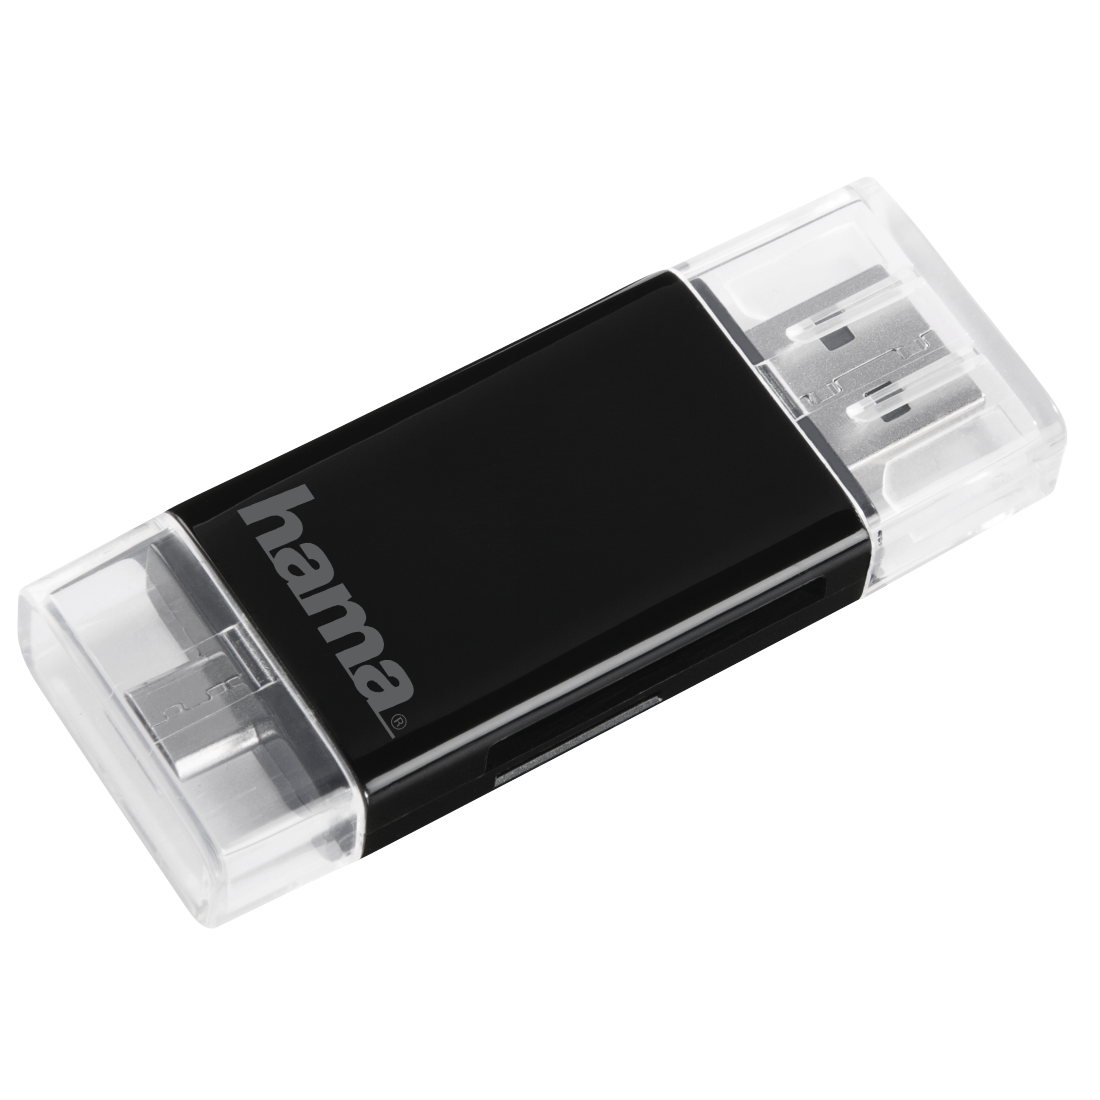 Hama USB 2.0 OTG Card Reader for Smartphone Tablet SD microSD